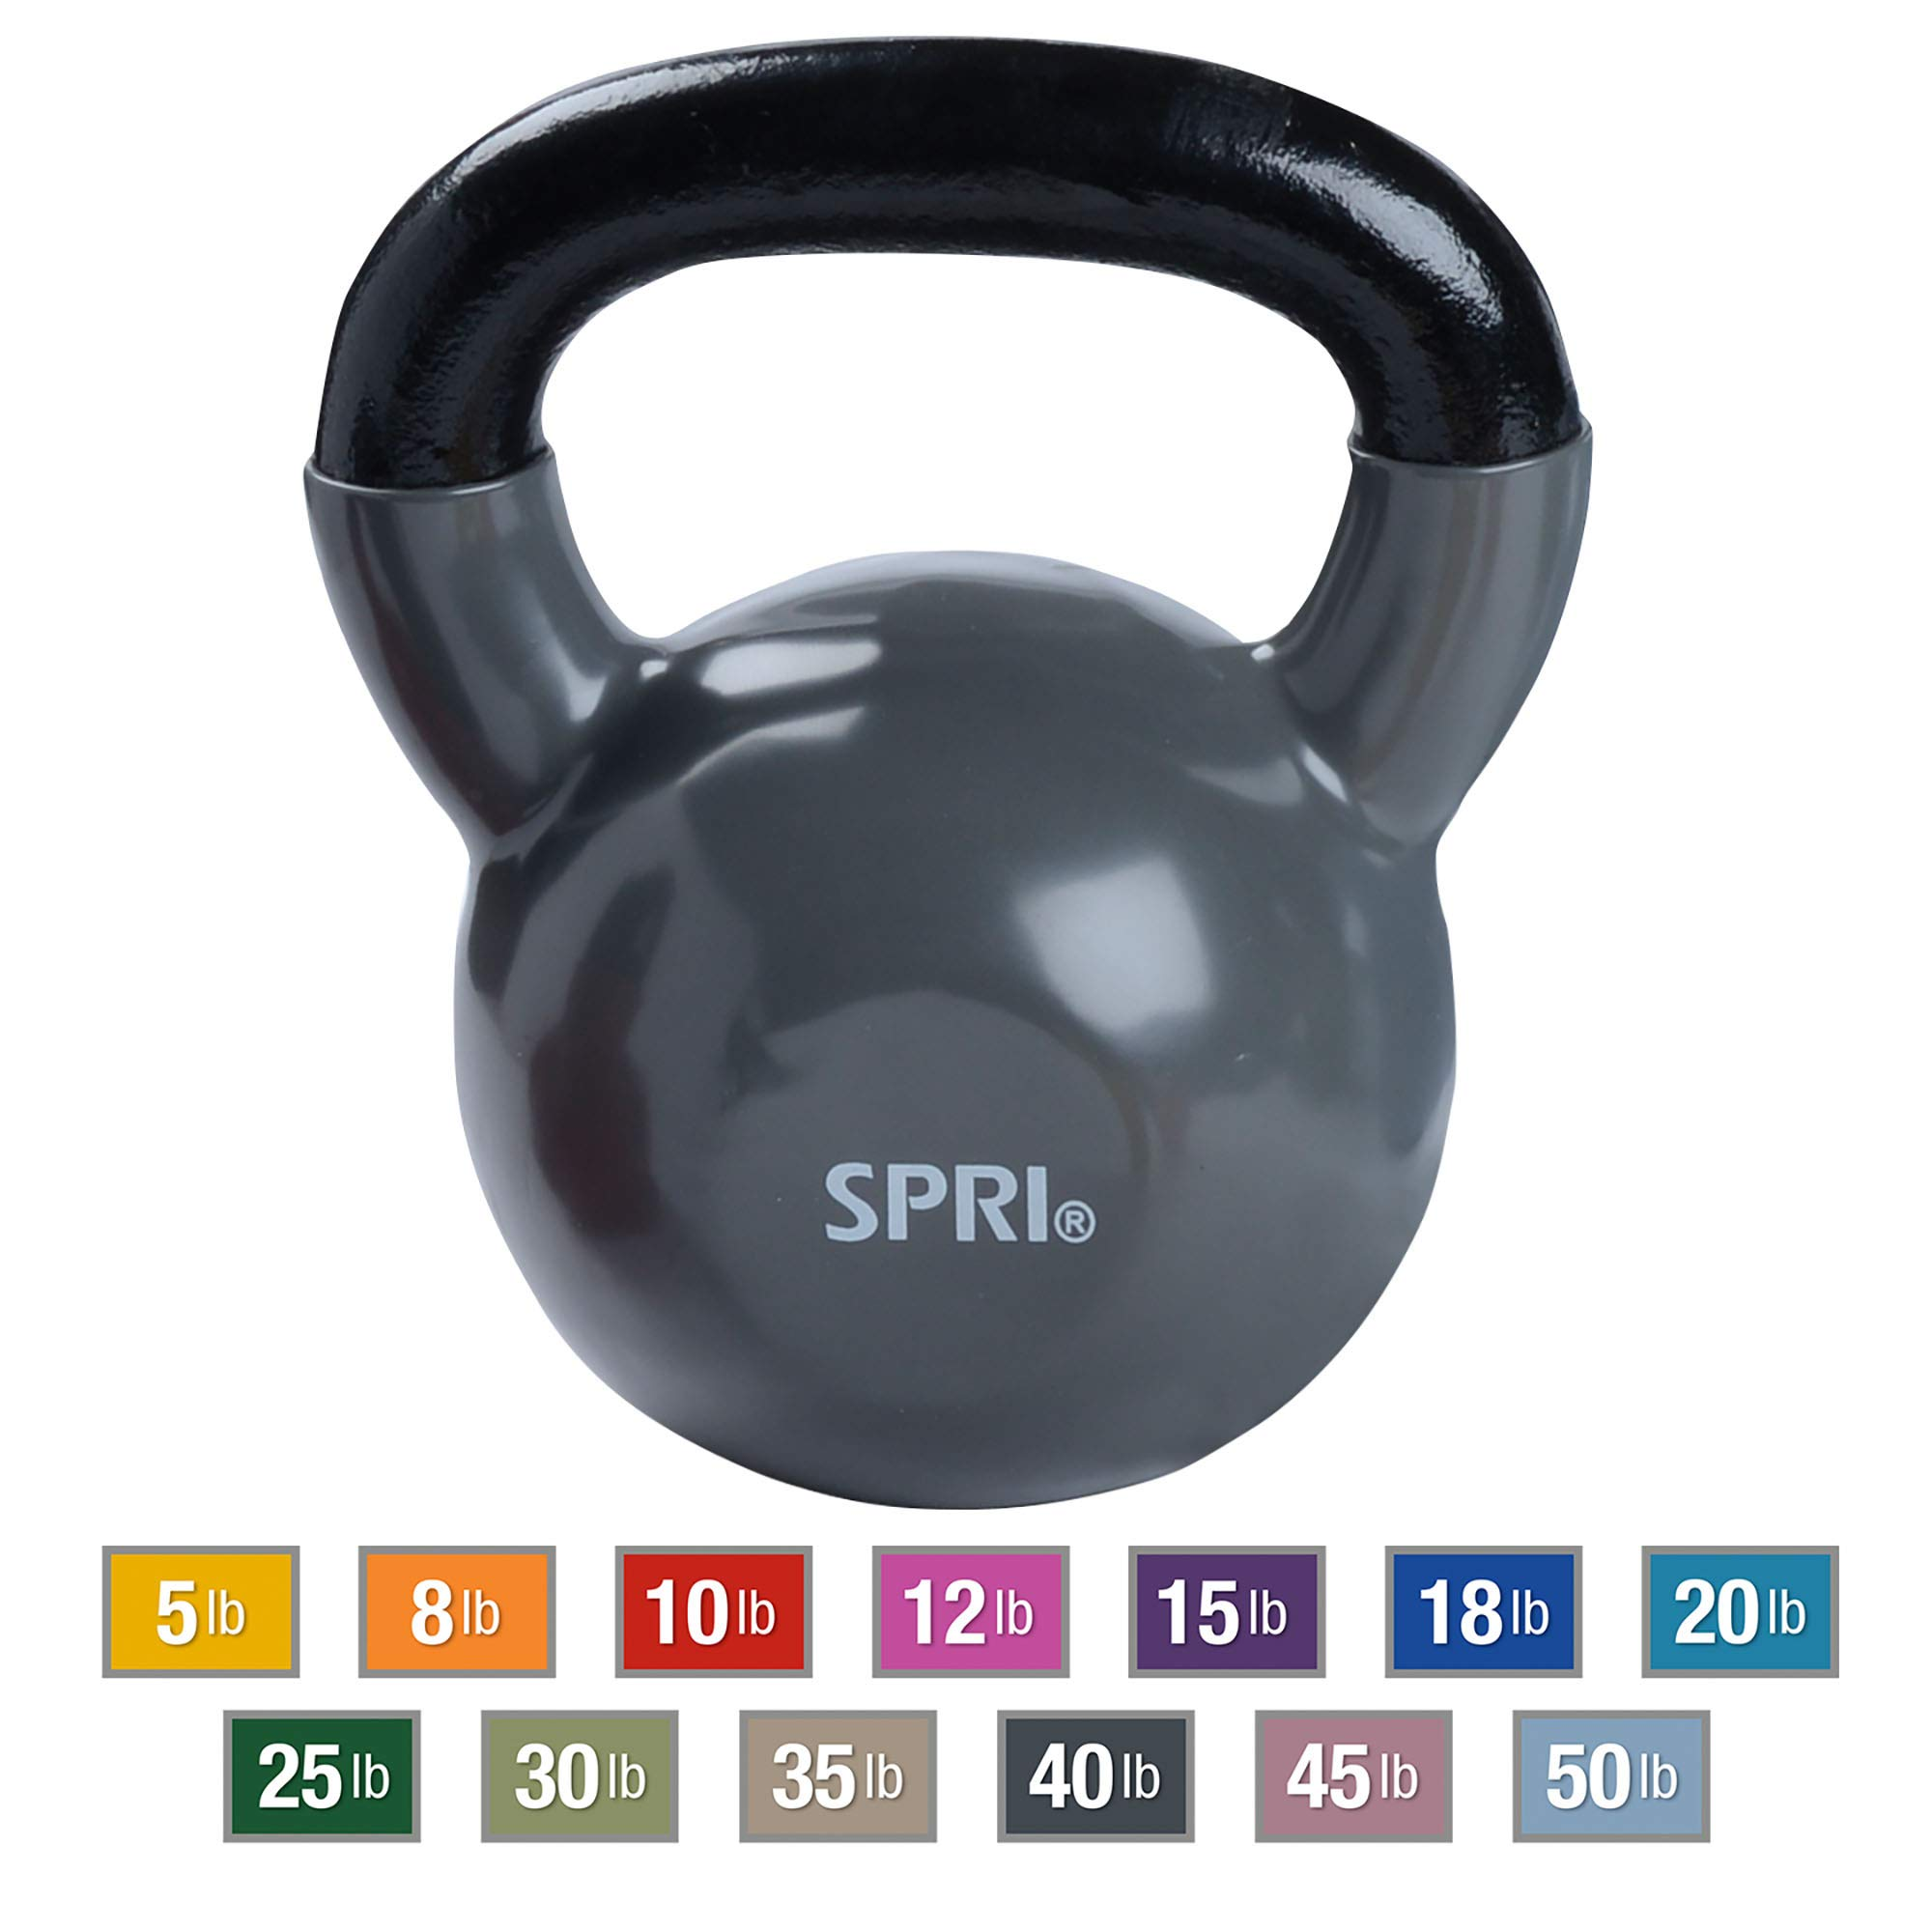 SPRI Kettlebell Weights Deluxe Cast Iron Vinyl Coated Comfort Grip Wide Handle Color Coded Kettlebell Weight Set (Grey, 40-Pound)